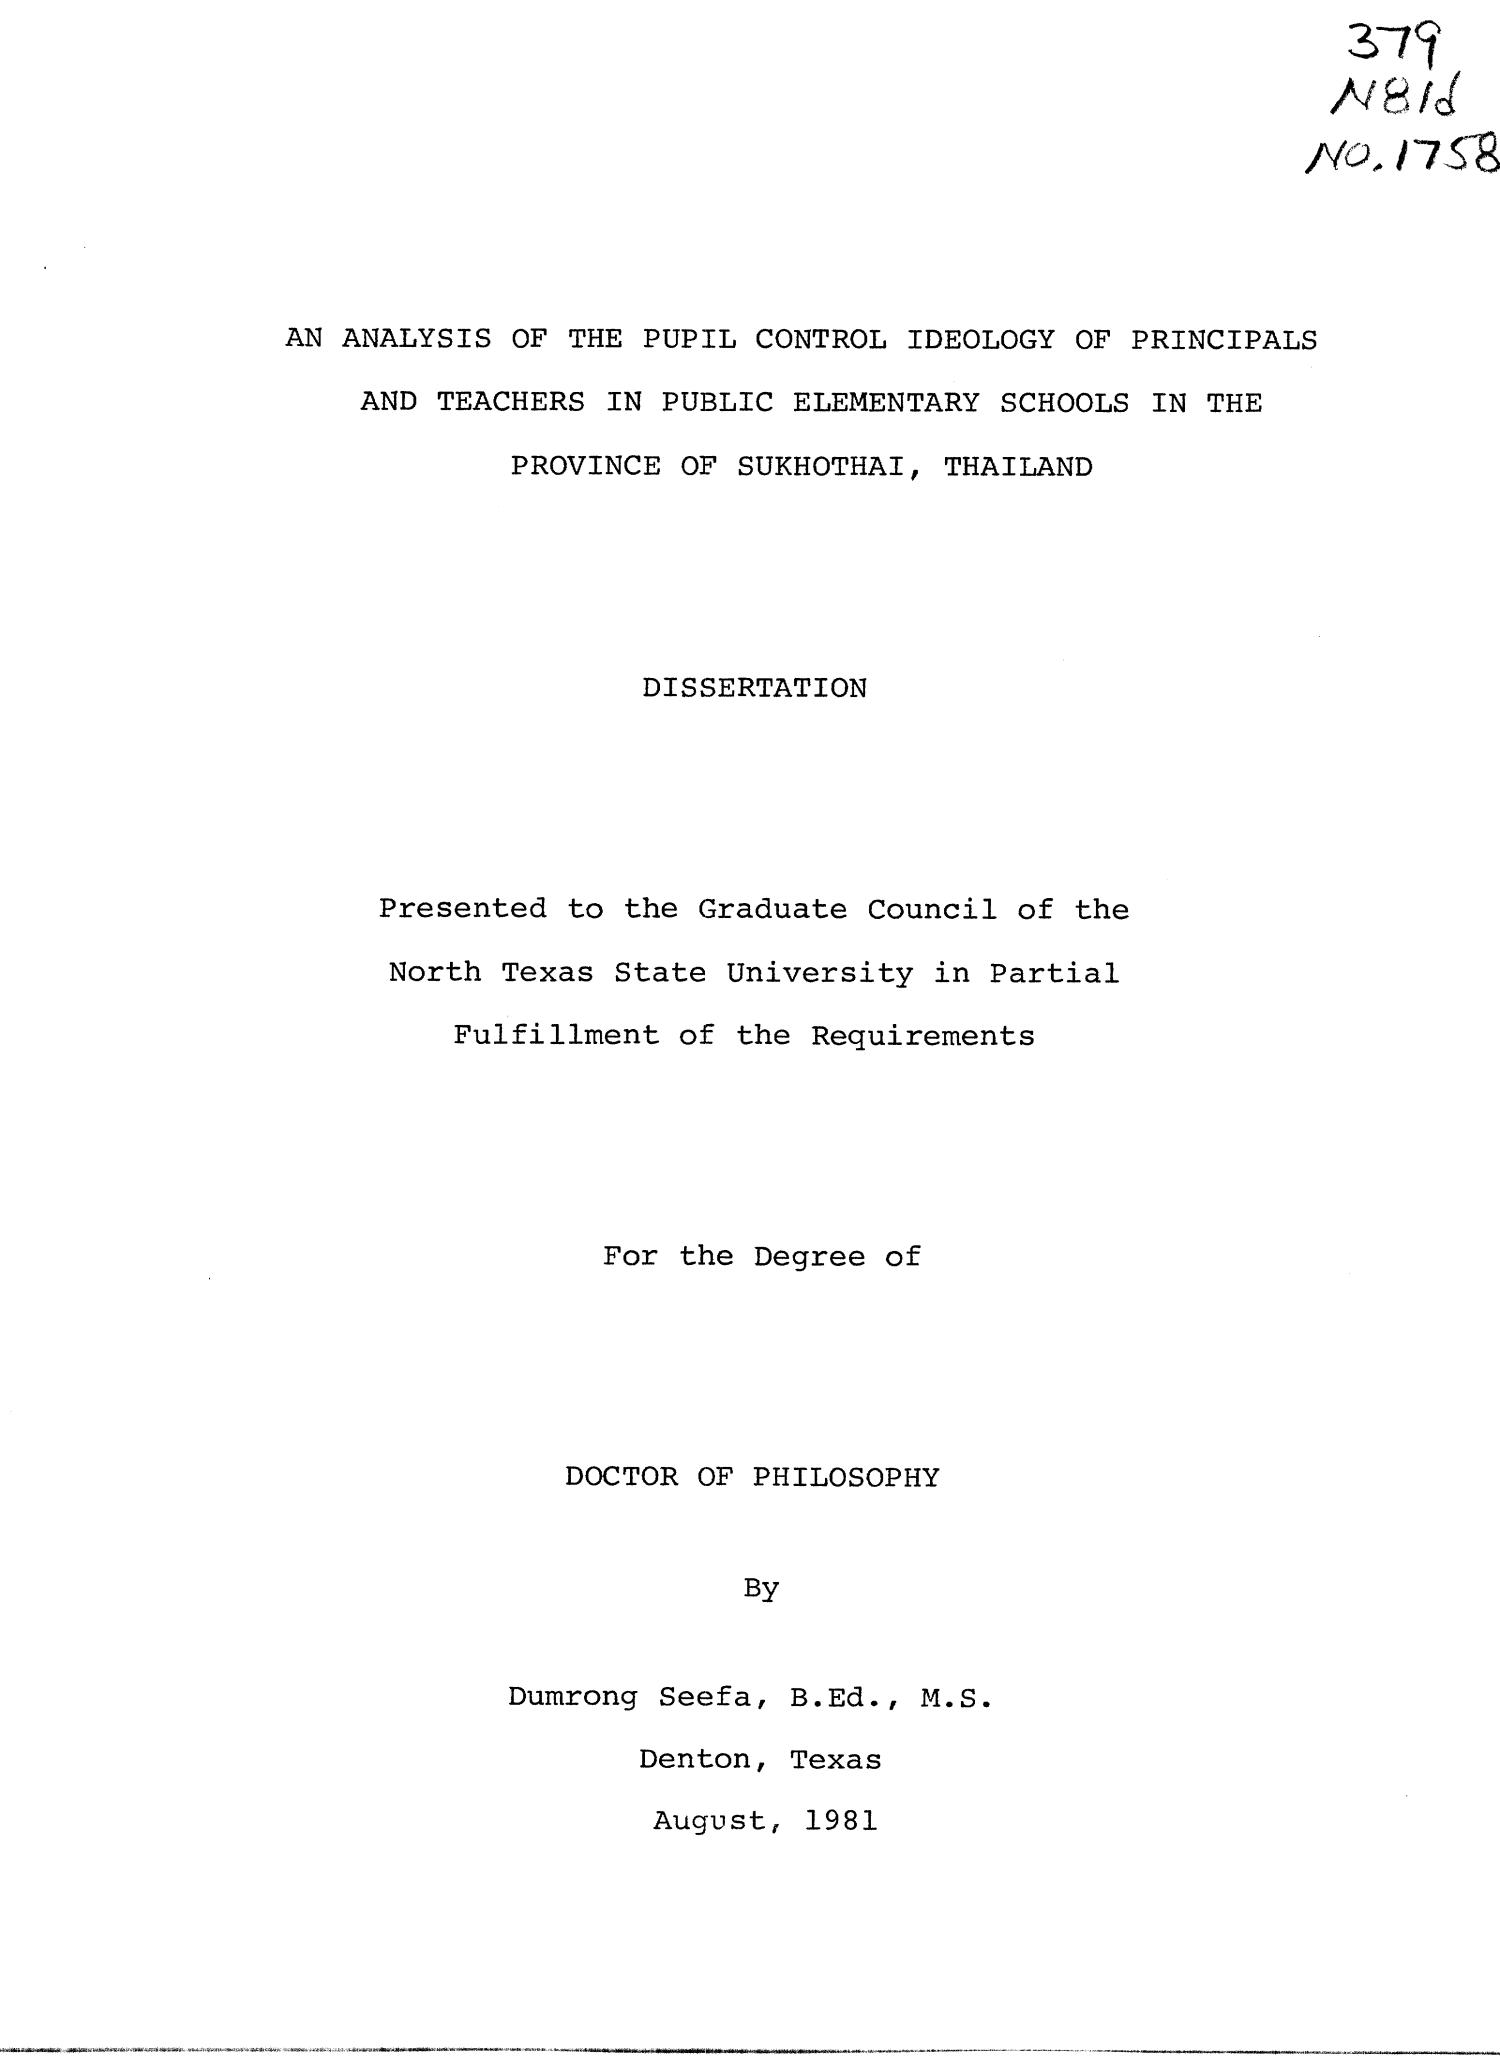 An Analysis of the Pupil Control Ideology of Principals and Teachers in Public Elementary Schools in the Province of Sukhothai, Thailand                                                                                                      Title Page